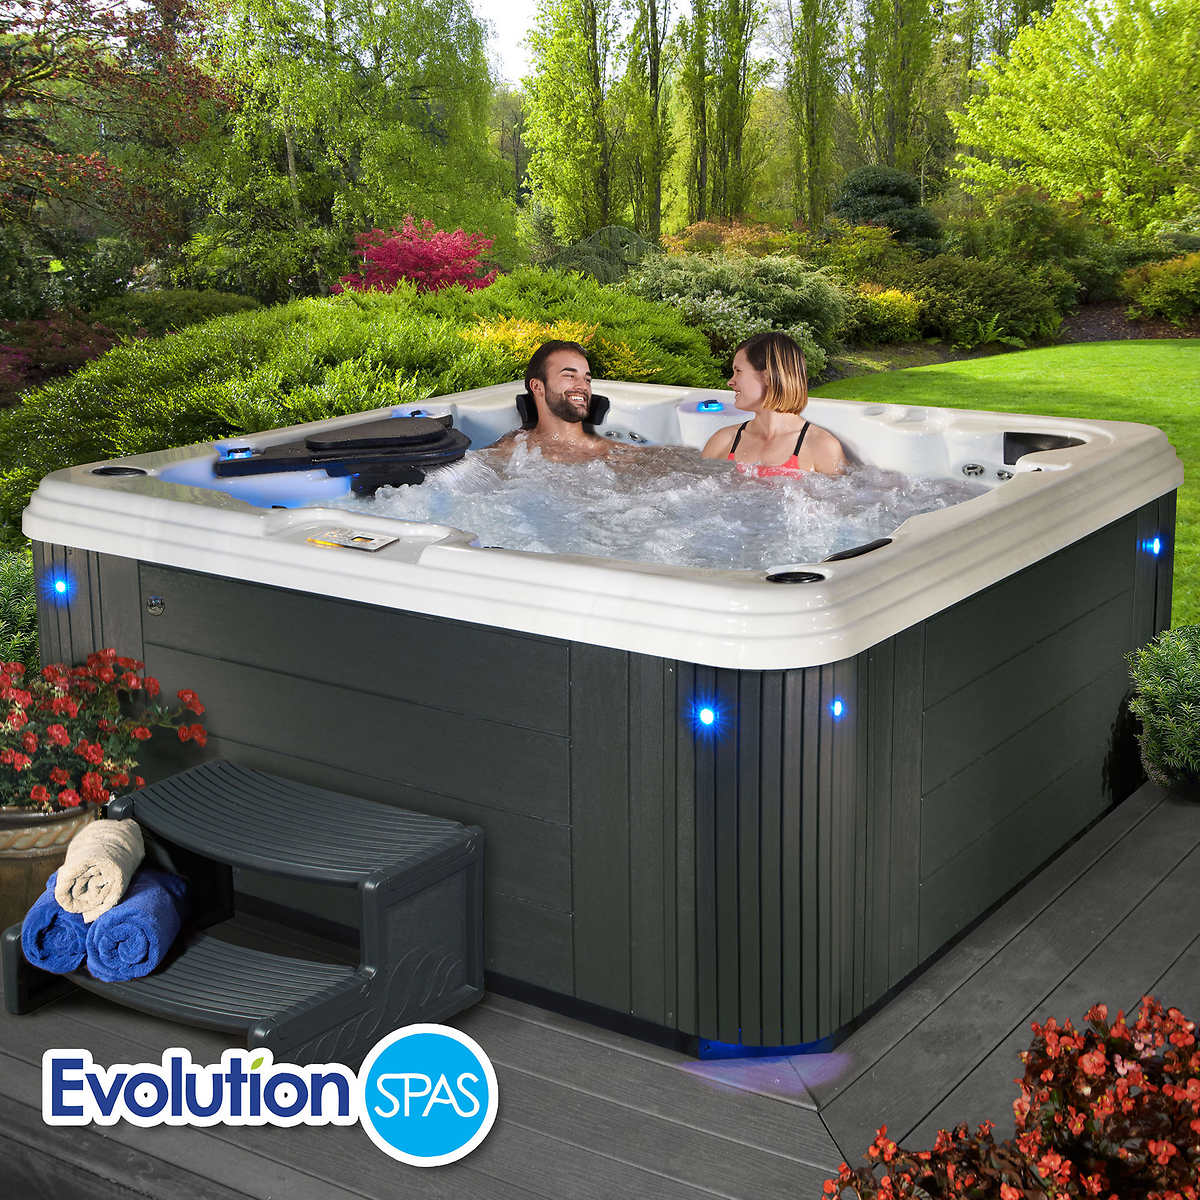 of tubs sale uk designs image ireland me outdoor hot in near round instructions tub jacuzzi costco malaysia ideas small for prices ground hotel